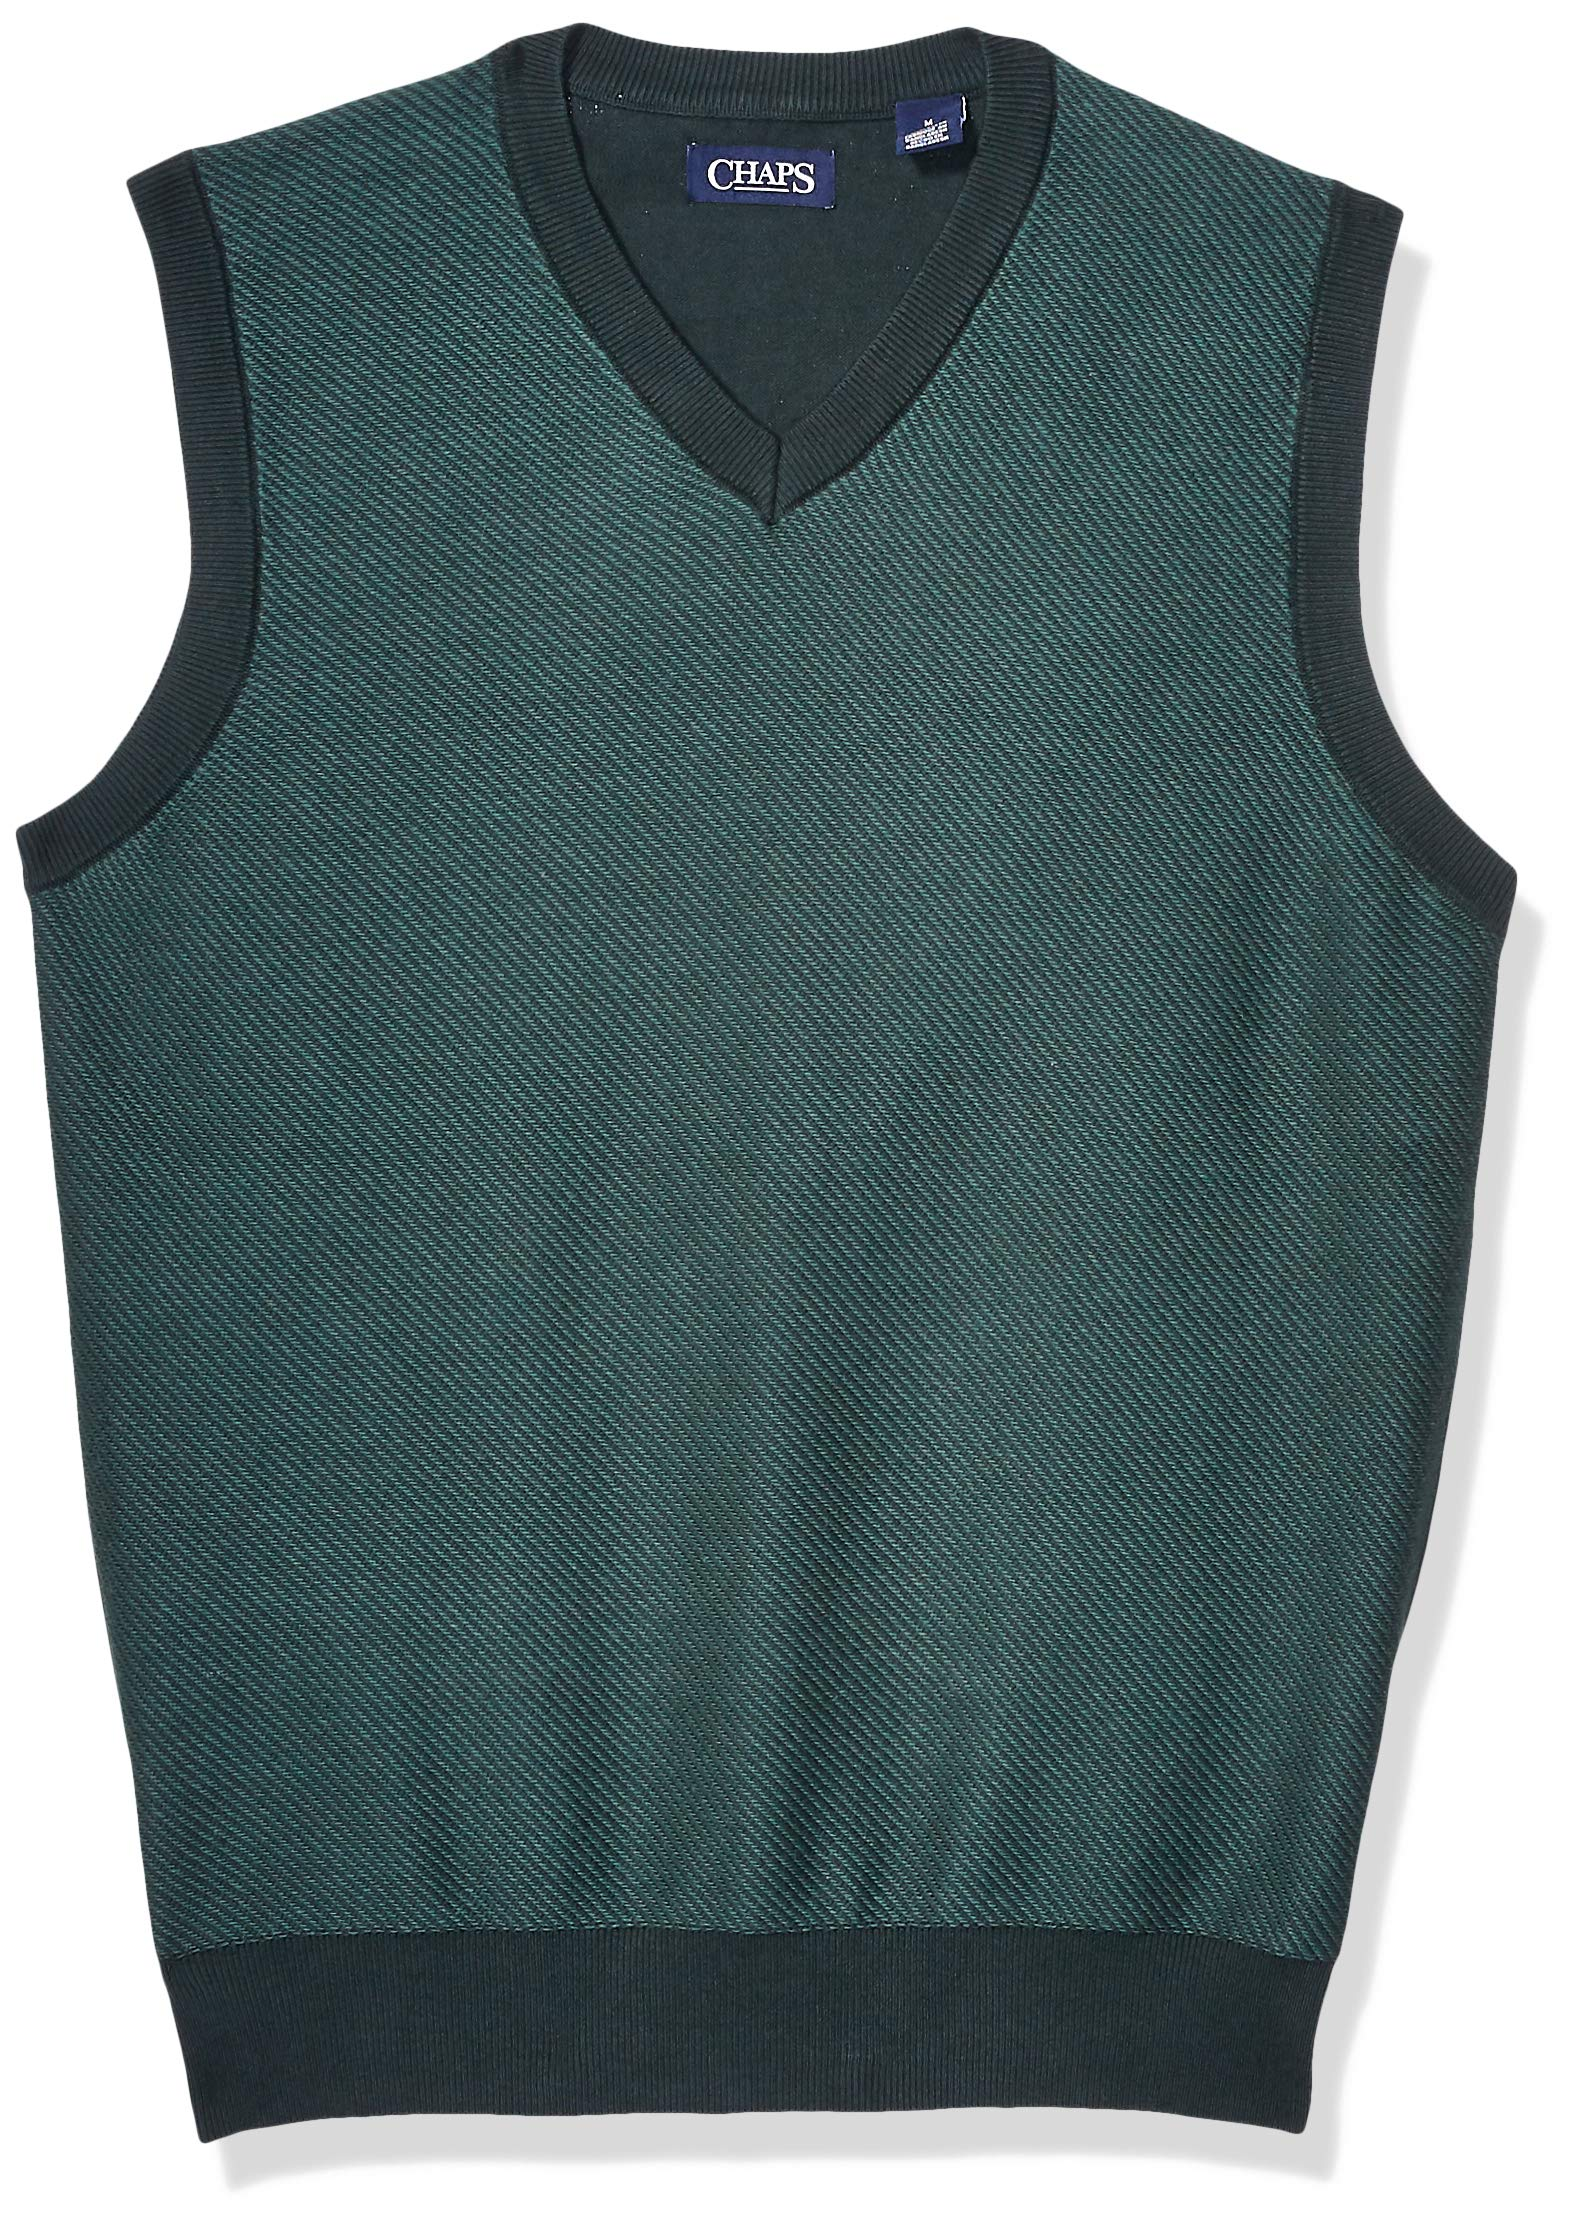 Chaps Men's Cotton V-Neck Sweater Vest, Hunt Club Green Multi, XXL by Chaps